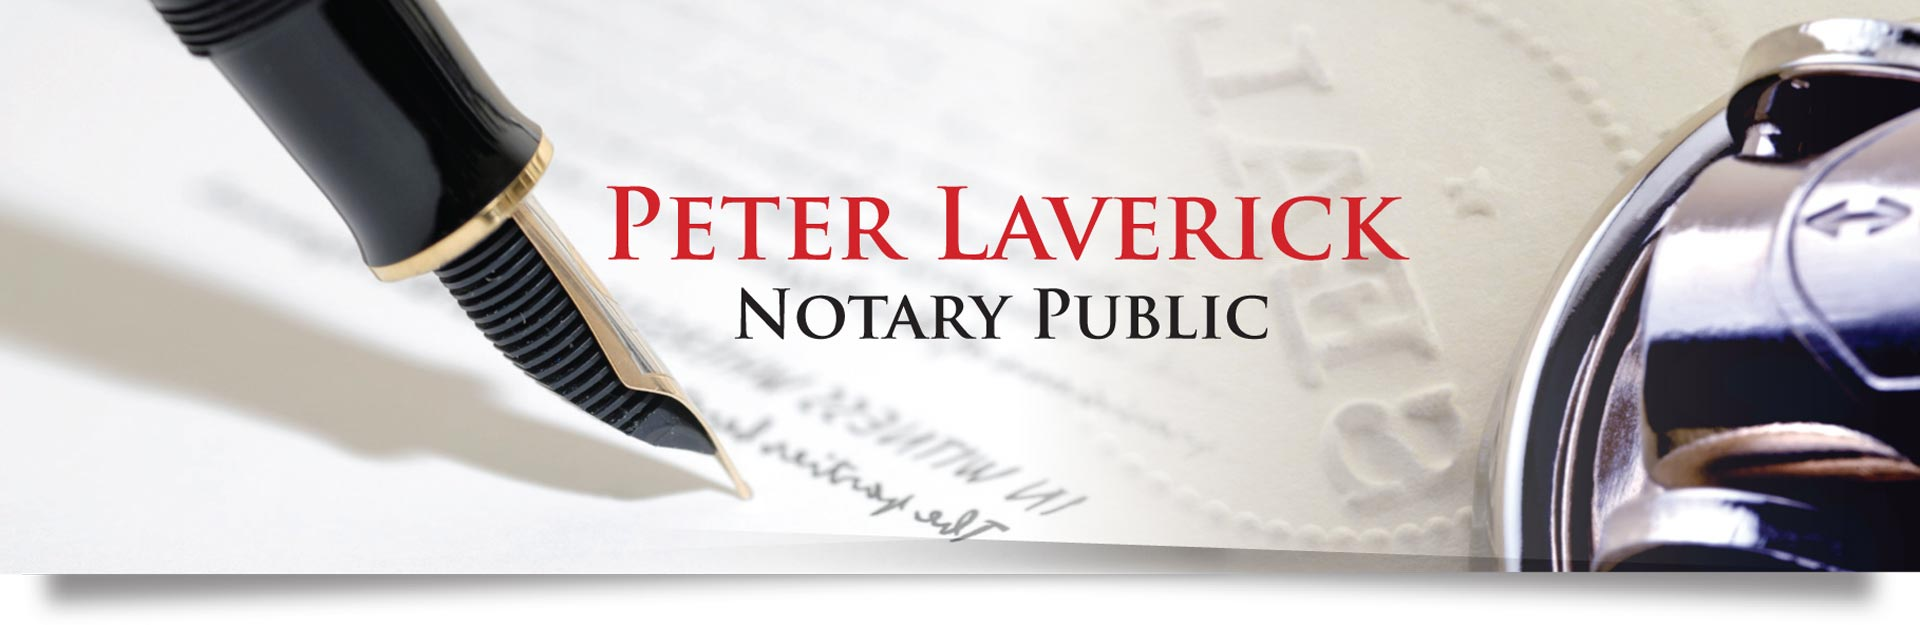 notary public Chichester West Sussex